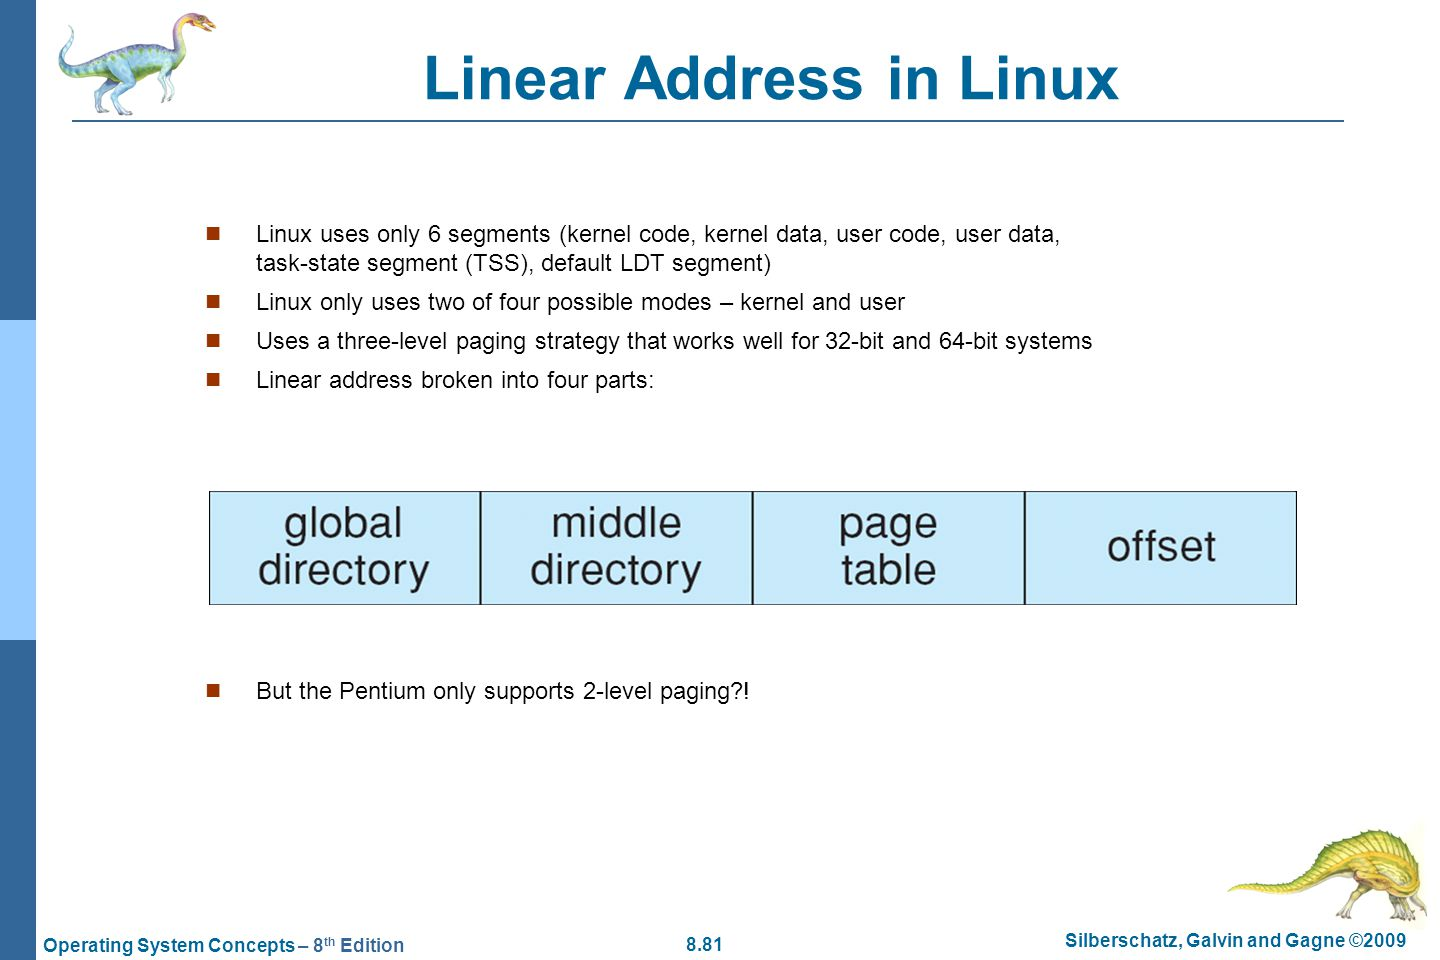 Linear Address in Linux